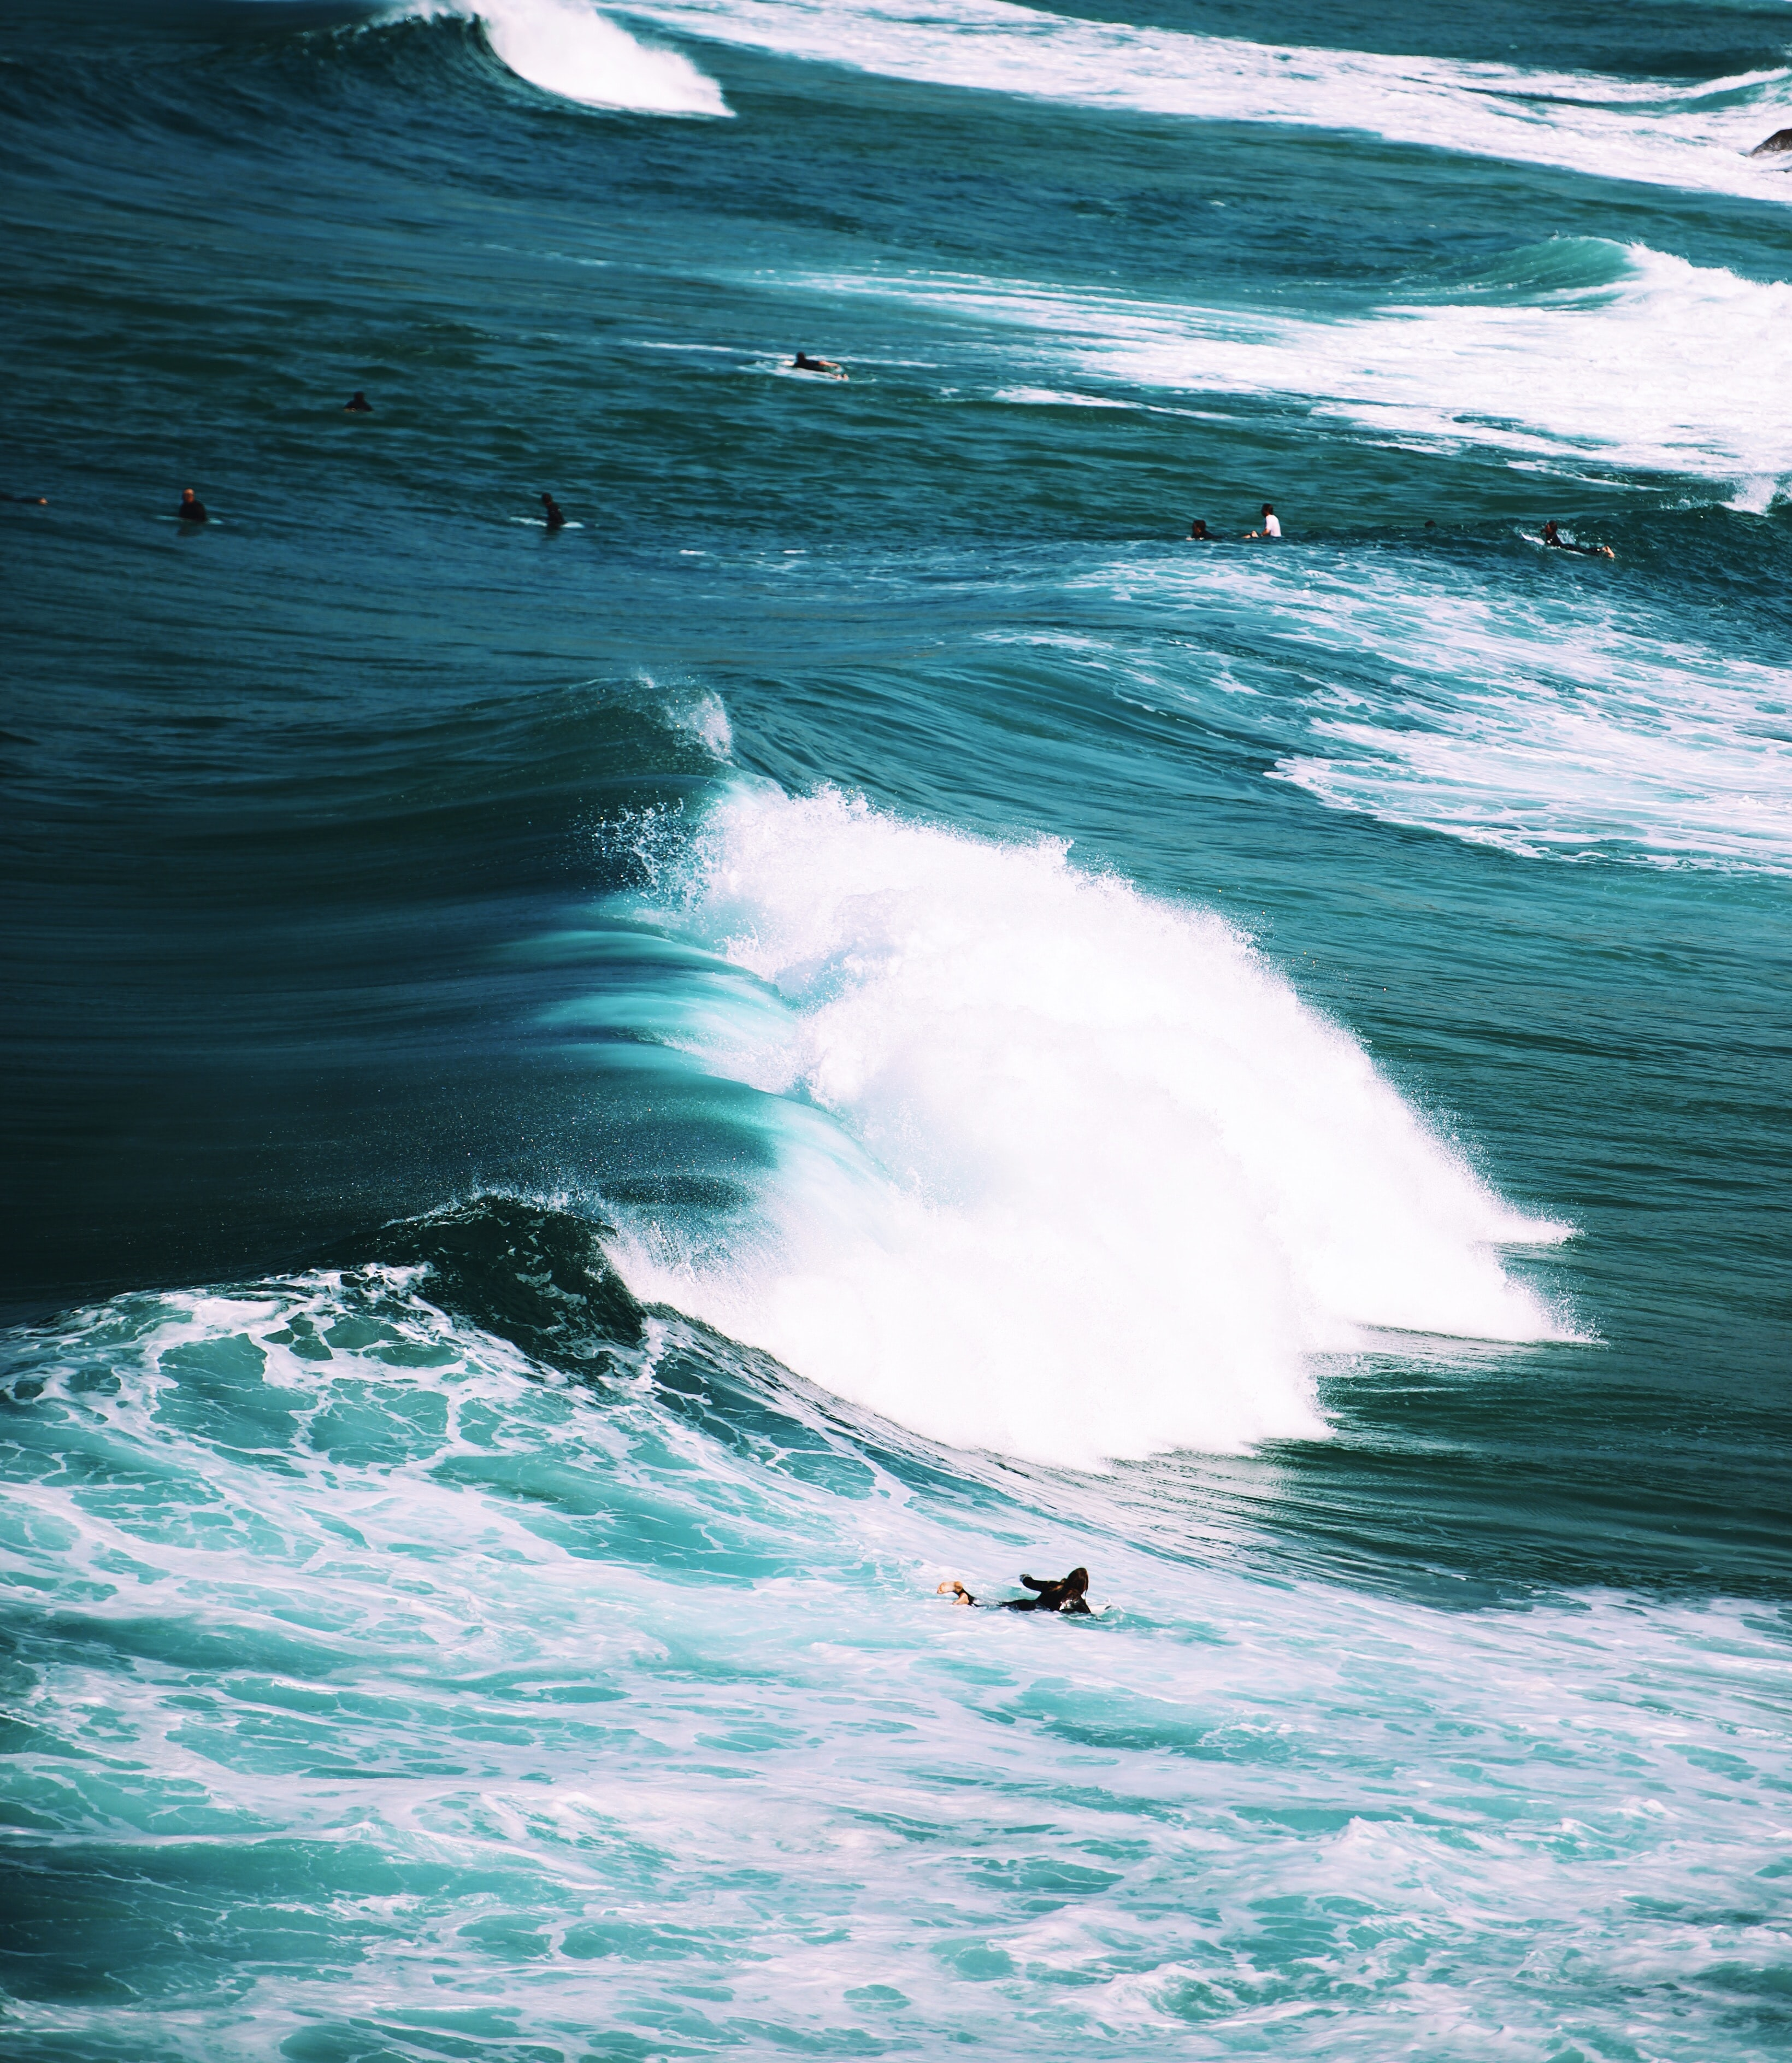 person on surfboard with ocean waves